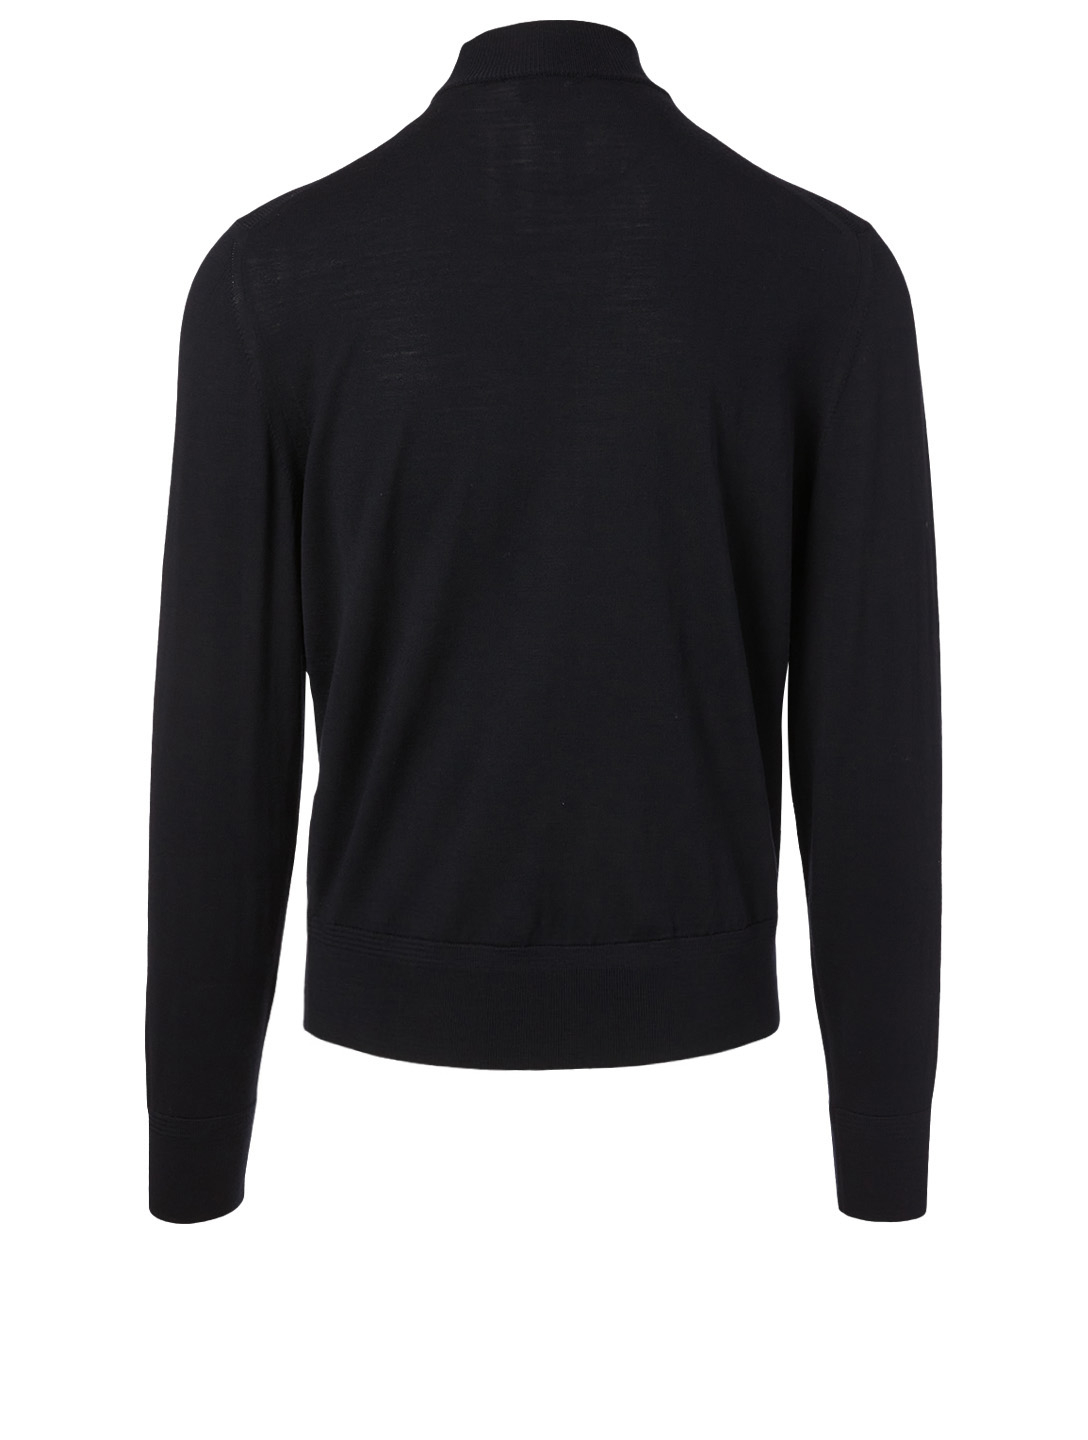 TOM FORD Wool Crewneck Sweater Men's Blue